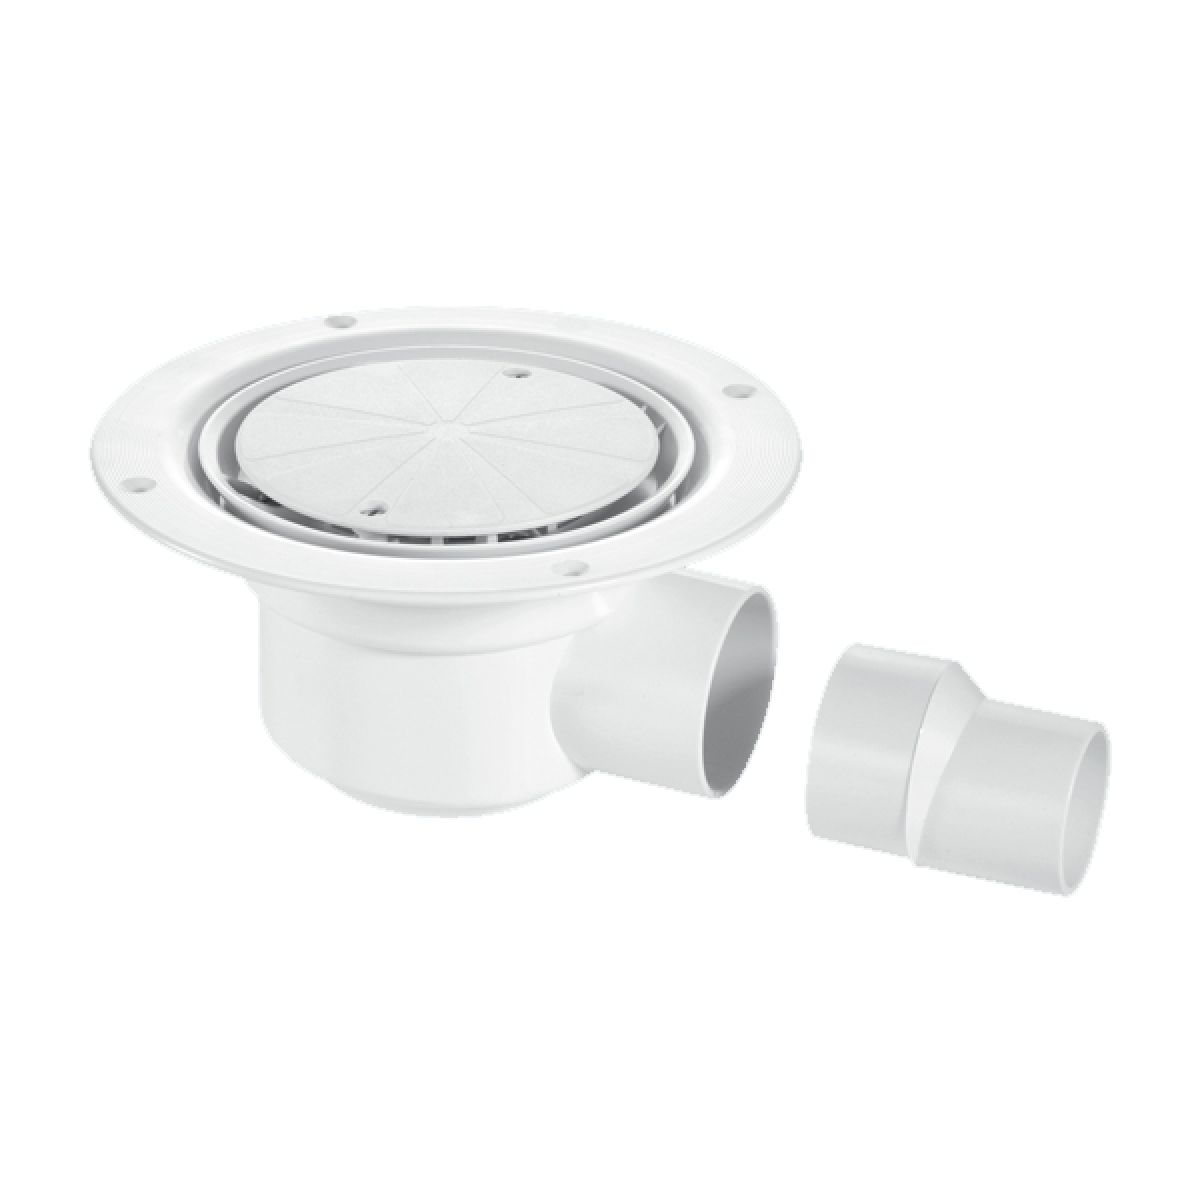 McAlpine TSG50WH 50mm Water Seal Trapped Gully: White Plastic Clamp Ring and Cover Plate